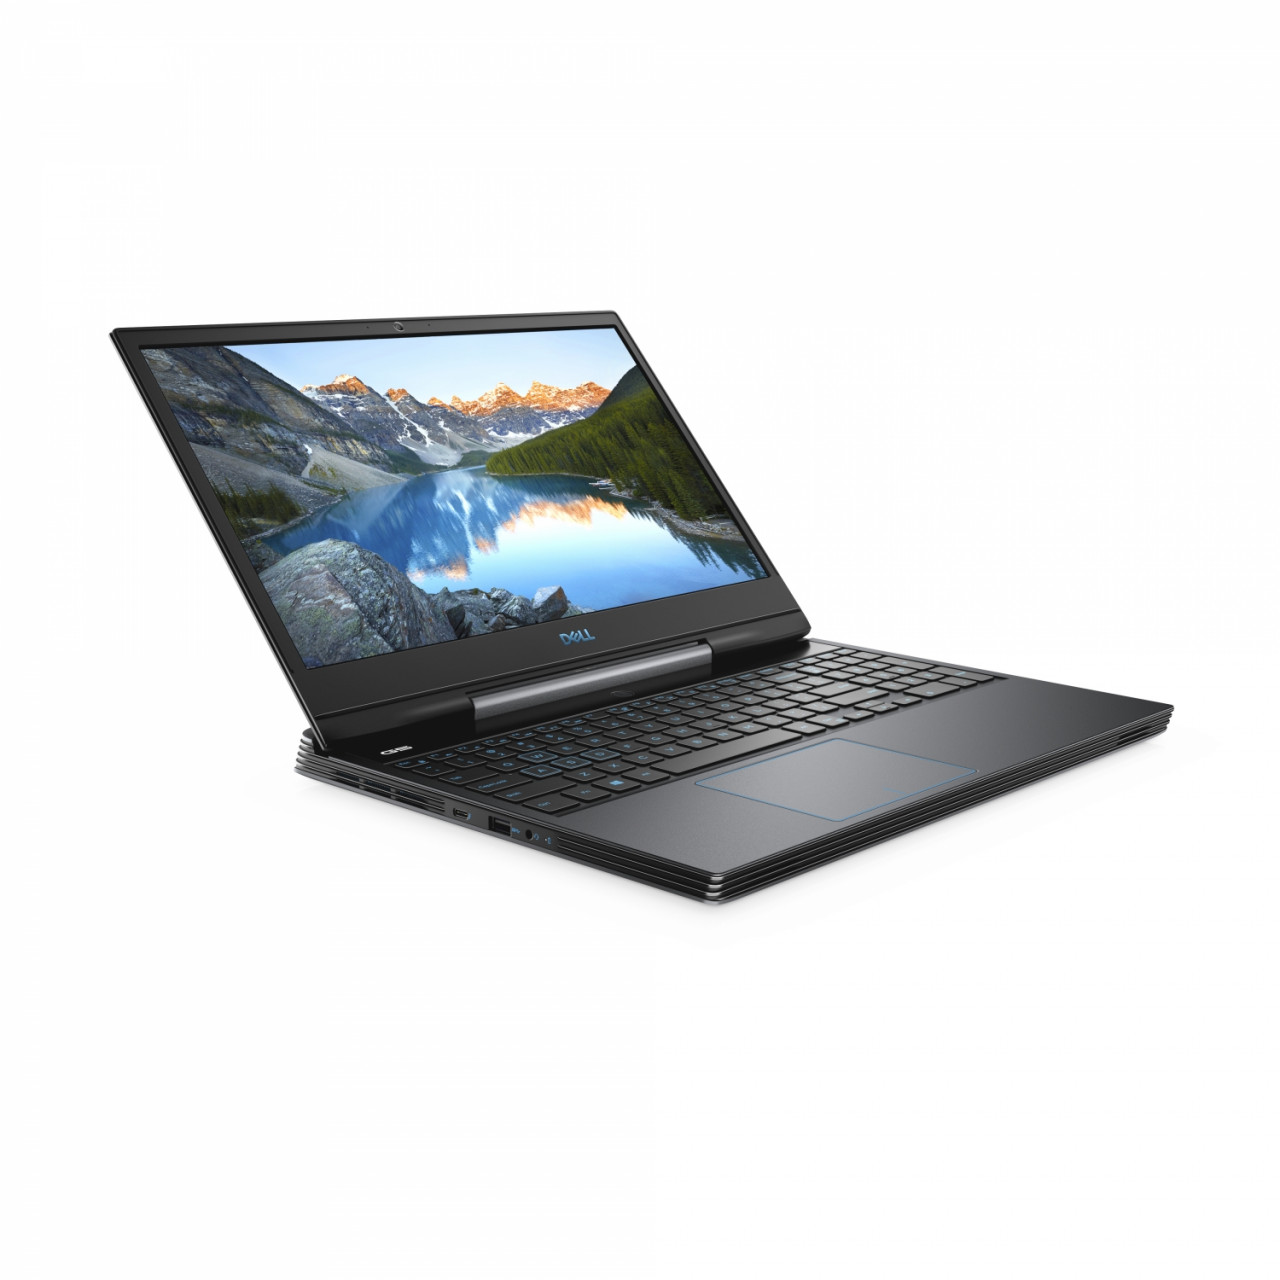 DELL G5 5590 Notebook 39,6 cm (15.6 Zoll) 1920 x 1080 Pixel Intel® Core™ i5 der 9. Generation 8 GB D